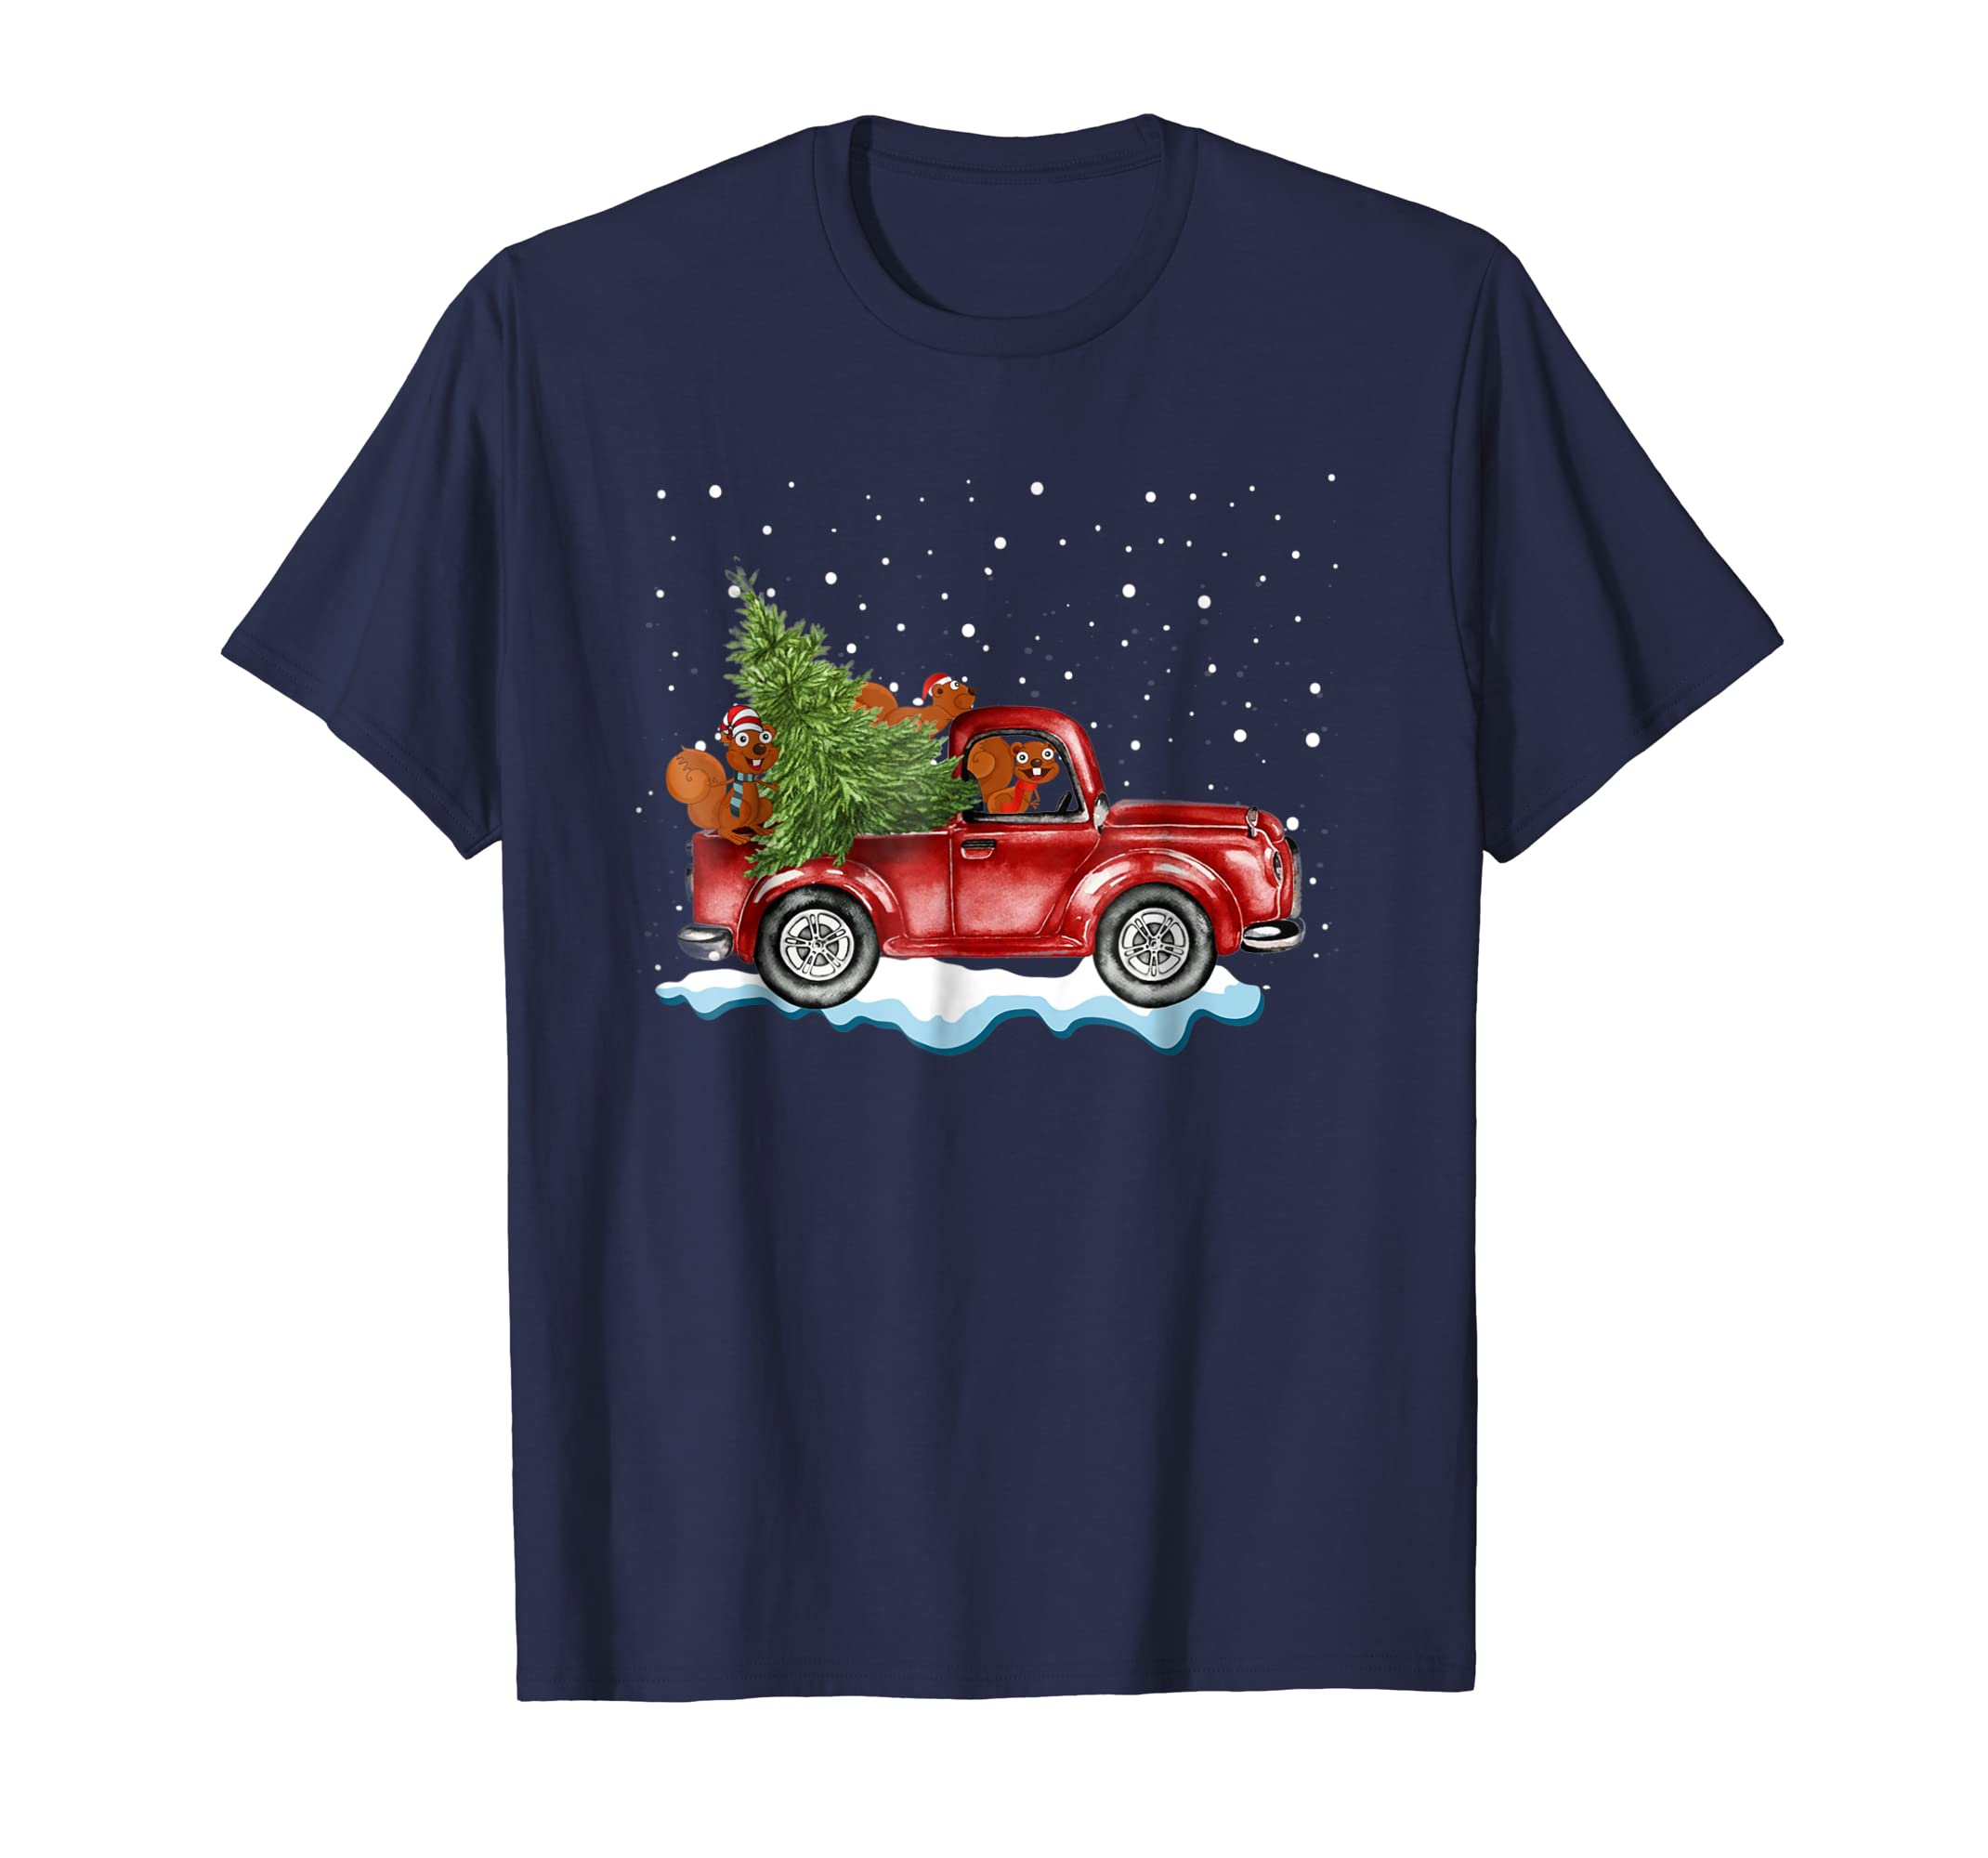 Squirrels Ride Red Truck Christmas Pajama Tshirt Xmas Gifts-azvn